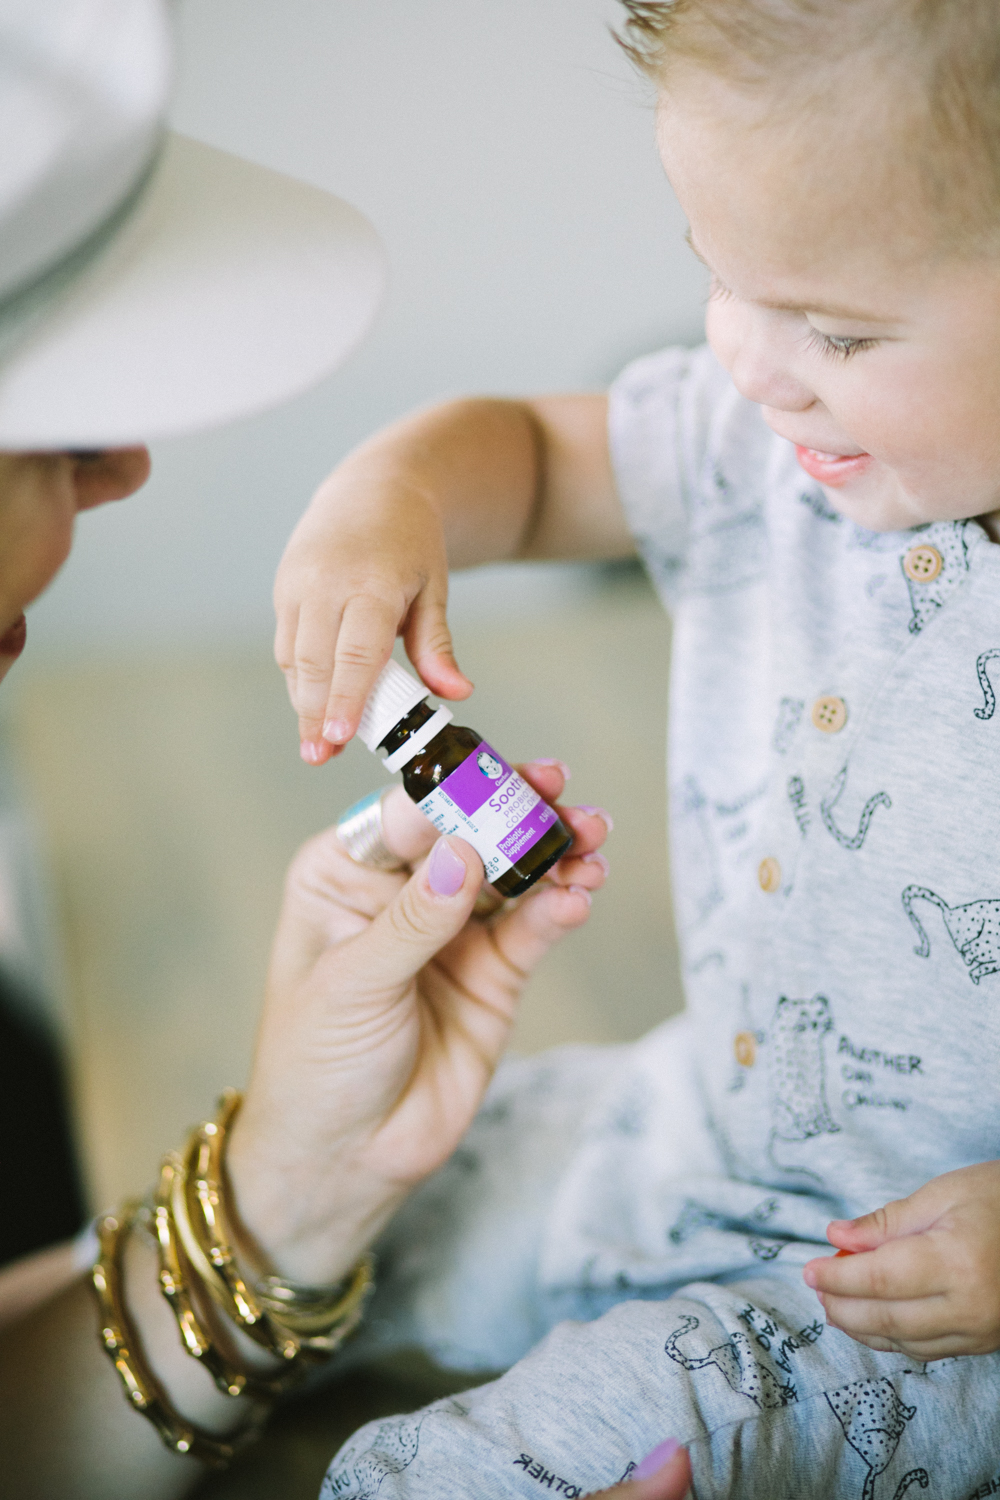 Gerber Probiotics review to easy a fussy baby featured by top US life and style blog, Life of a Sister